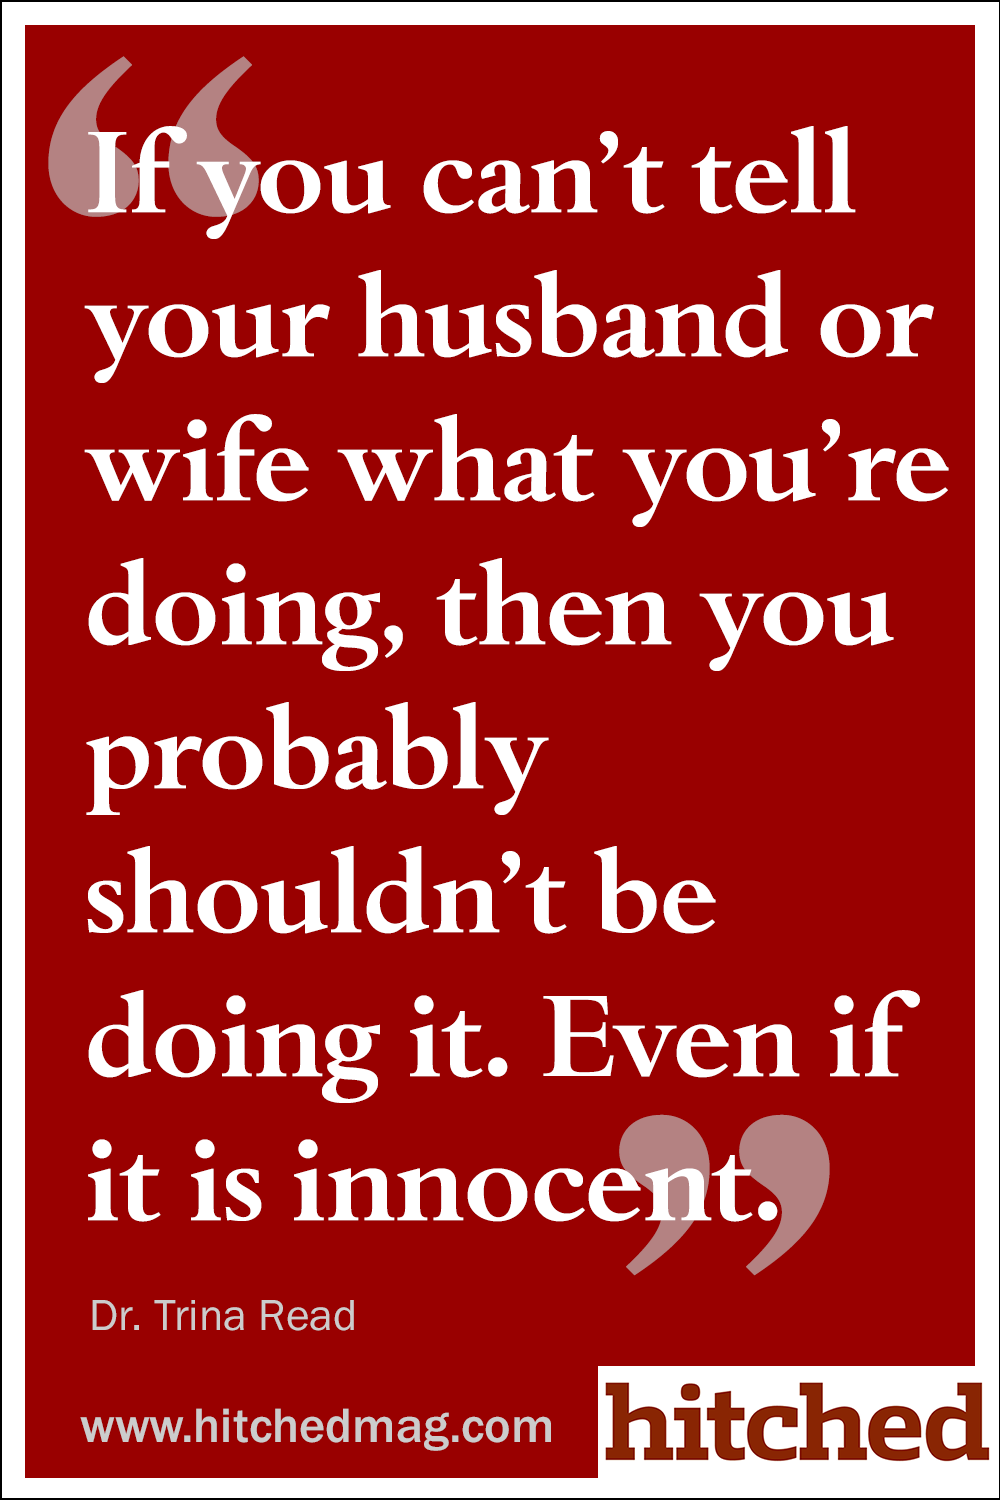 7 Tips How to Deal With a Crush When Married Love Your Wife QuotesReal